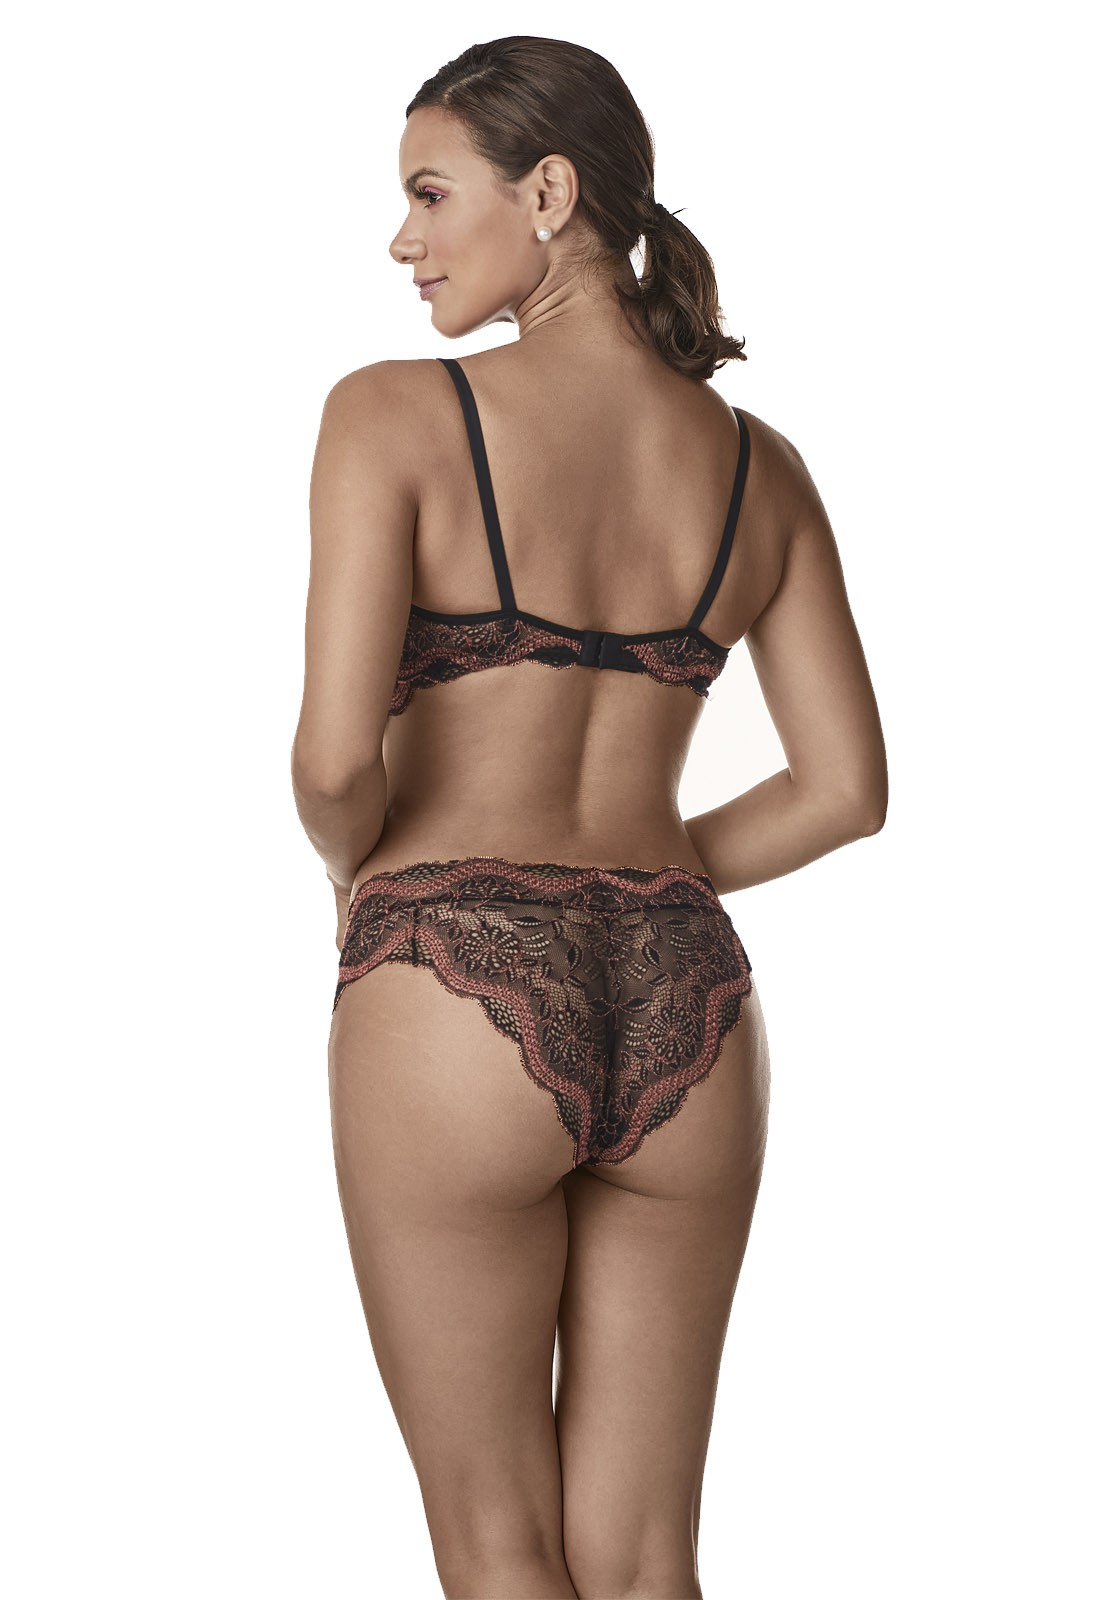 Sutia Lateral Long - Dukley Lingerie - SLIM - 148